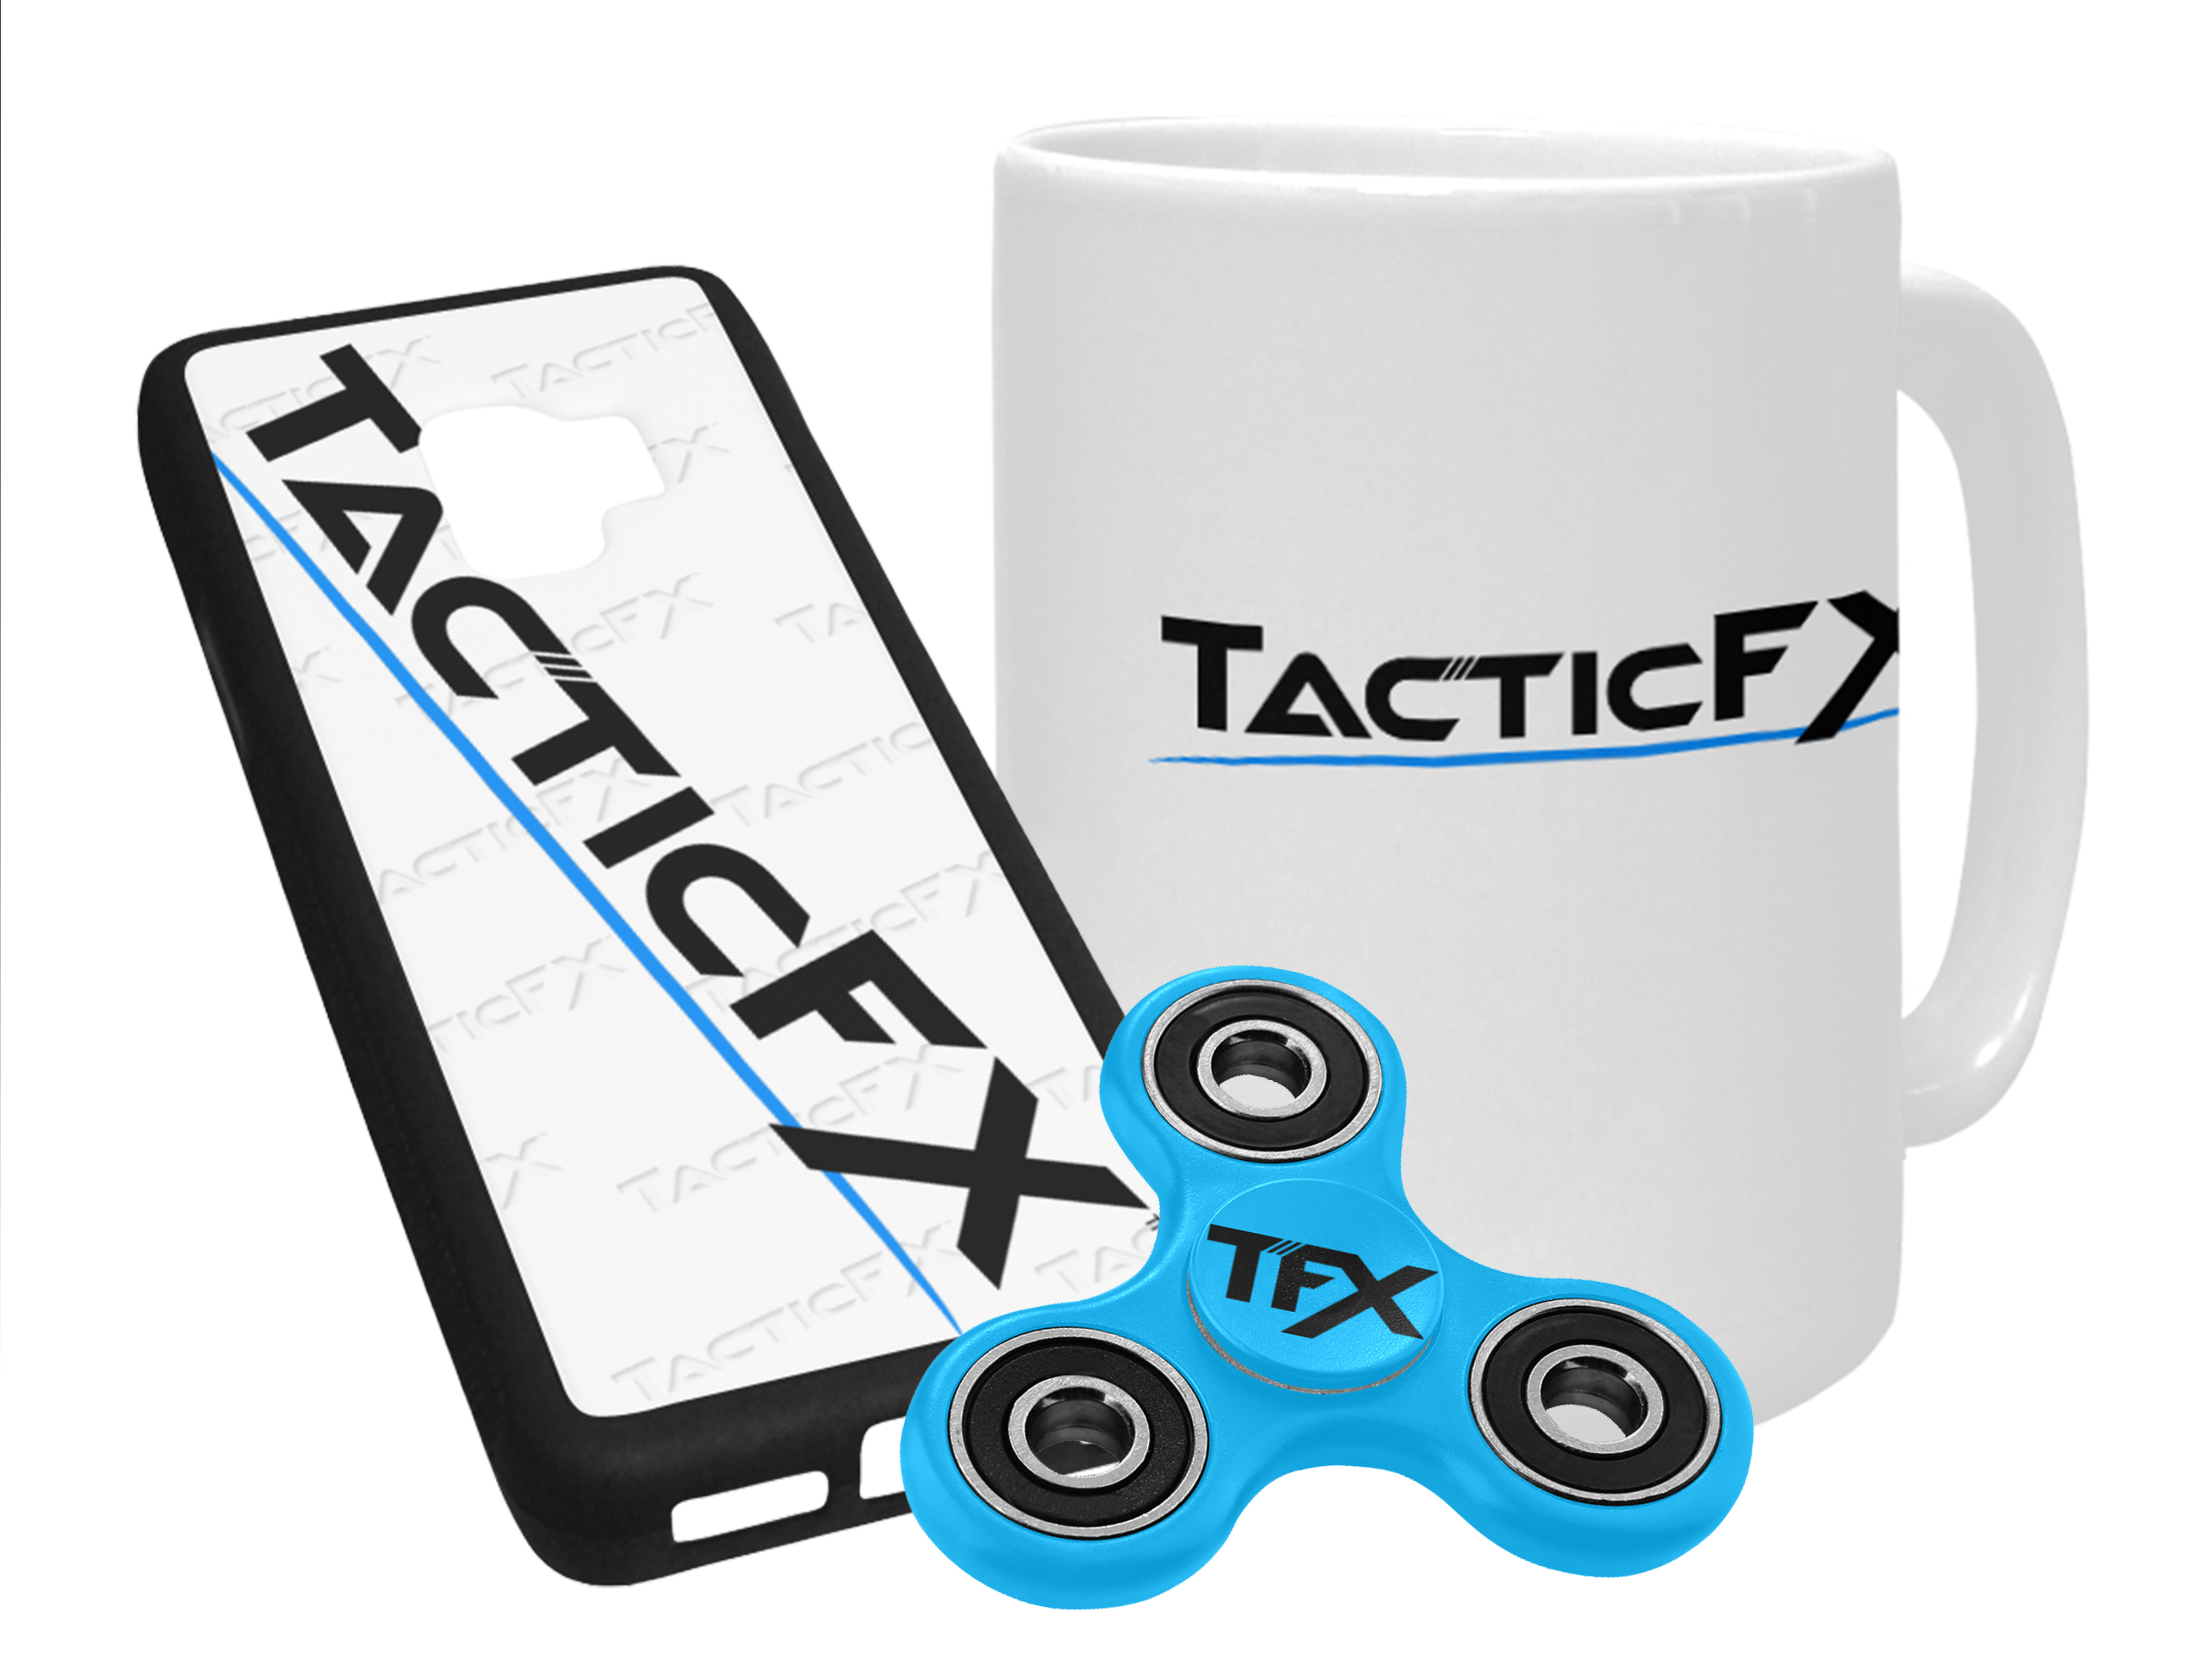 TacticFX promotional items including a branded coffee mug, phone case, and fidget spinner.